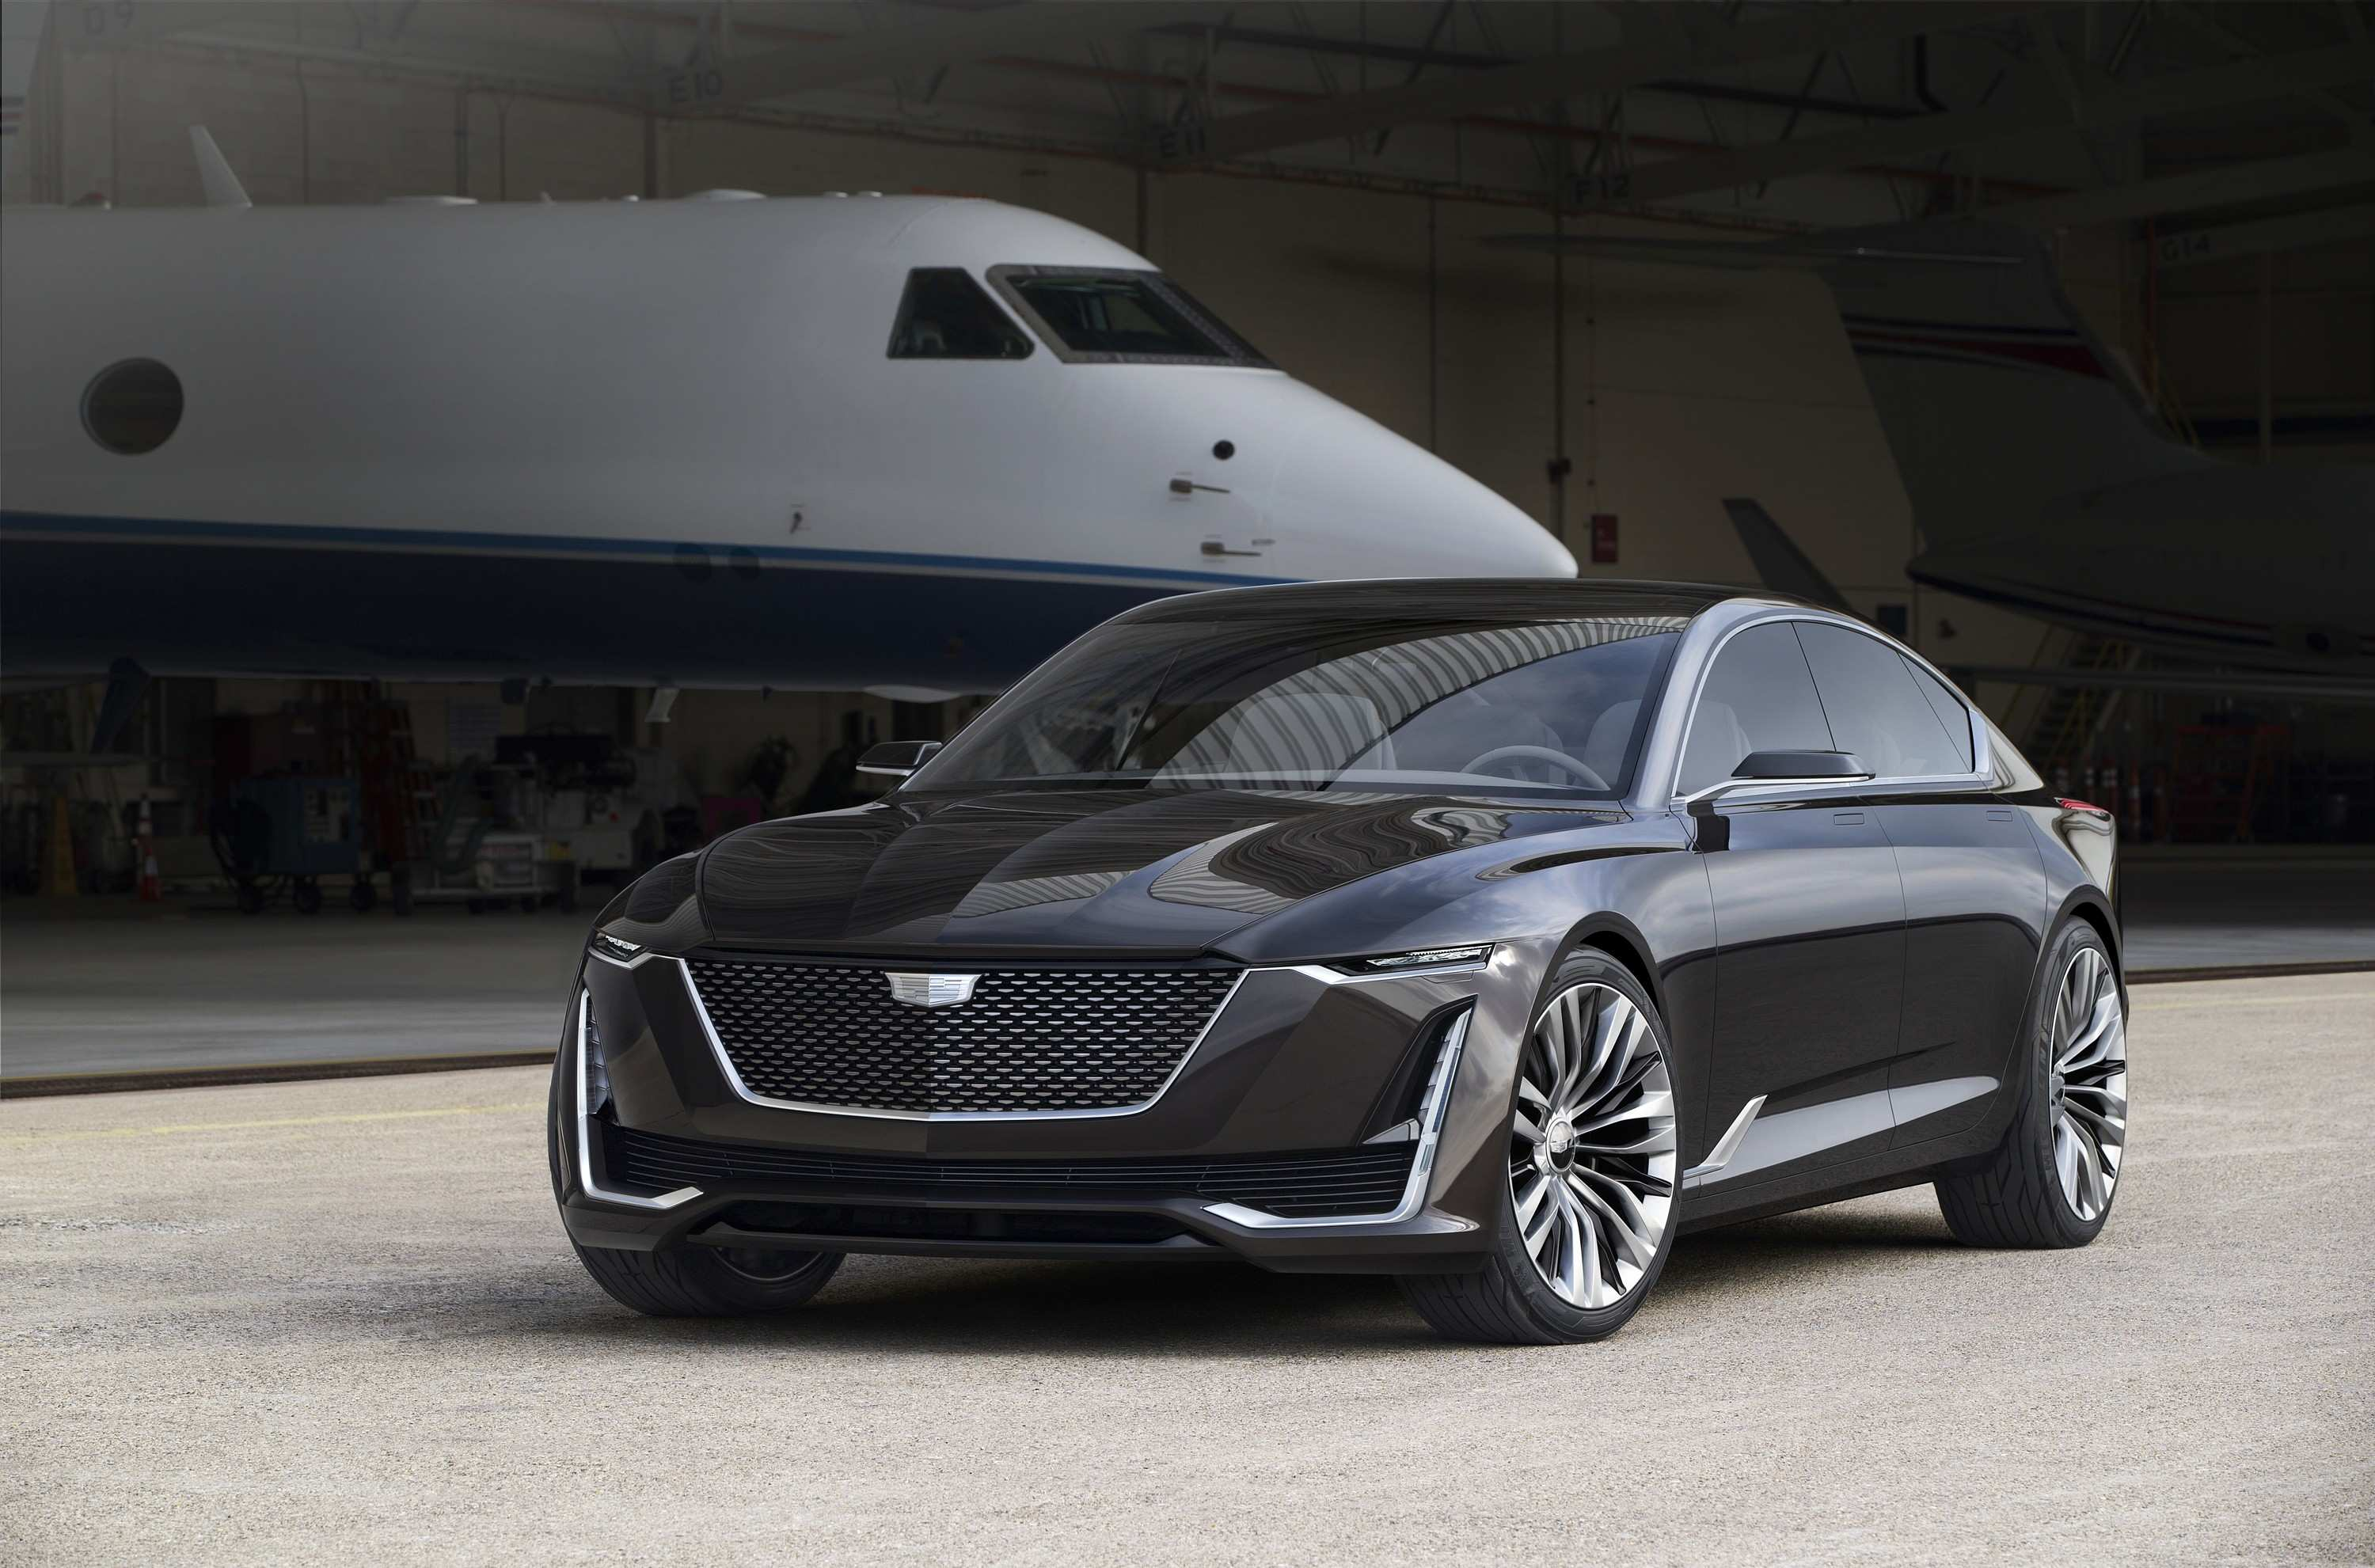 69 Best 2020 Cadillac Cts V Horsepower Configurations